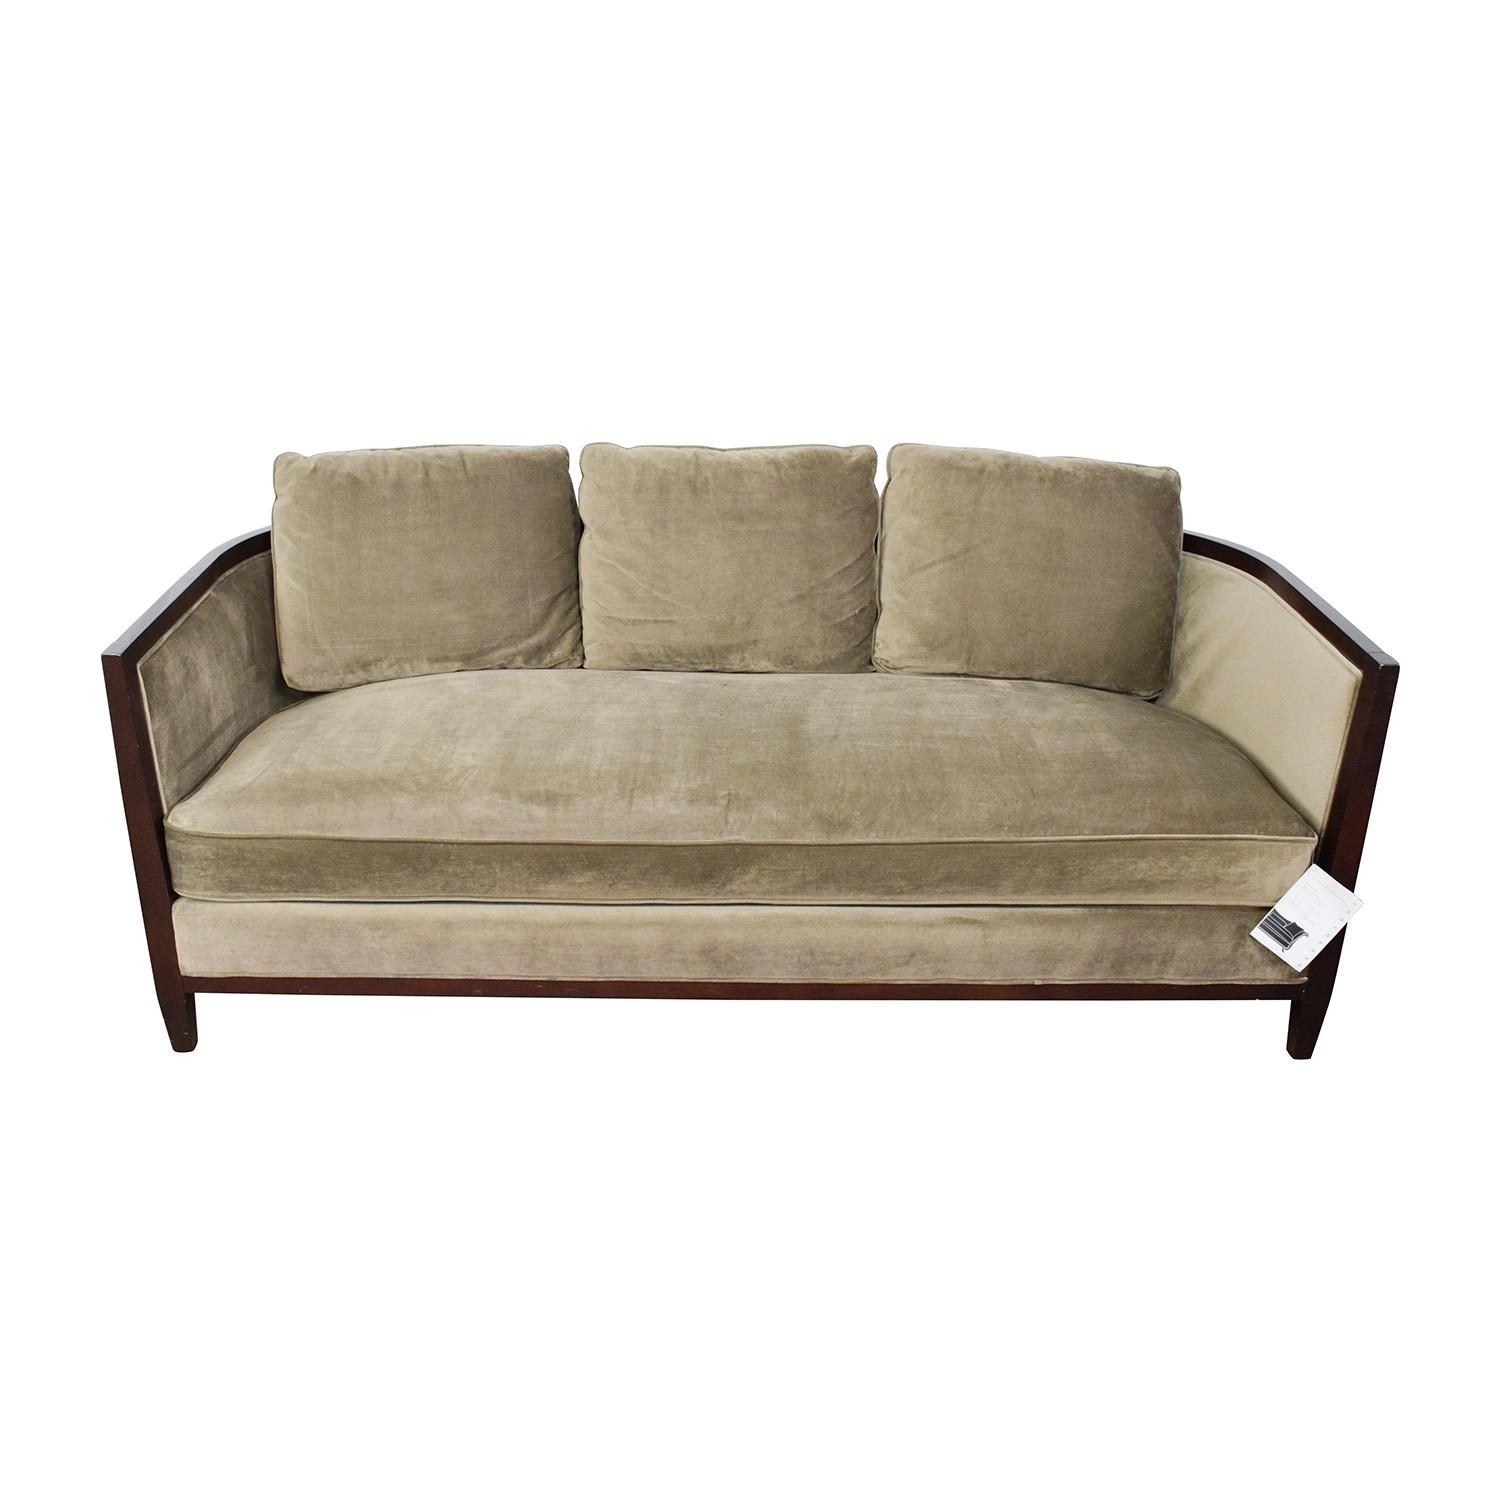 One Cushion Sofas Sale | Cushions Decoration Intended For One Cushion Sofas (View 17 of 20)